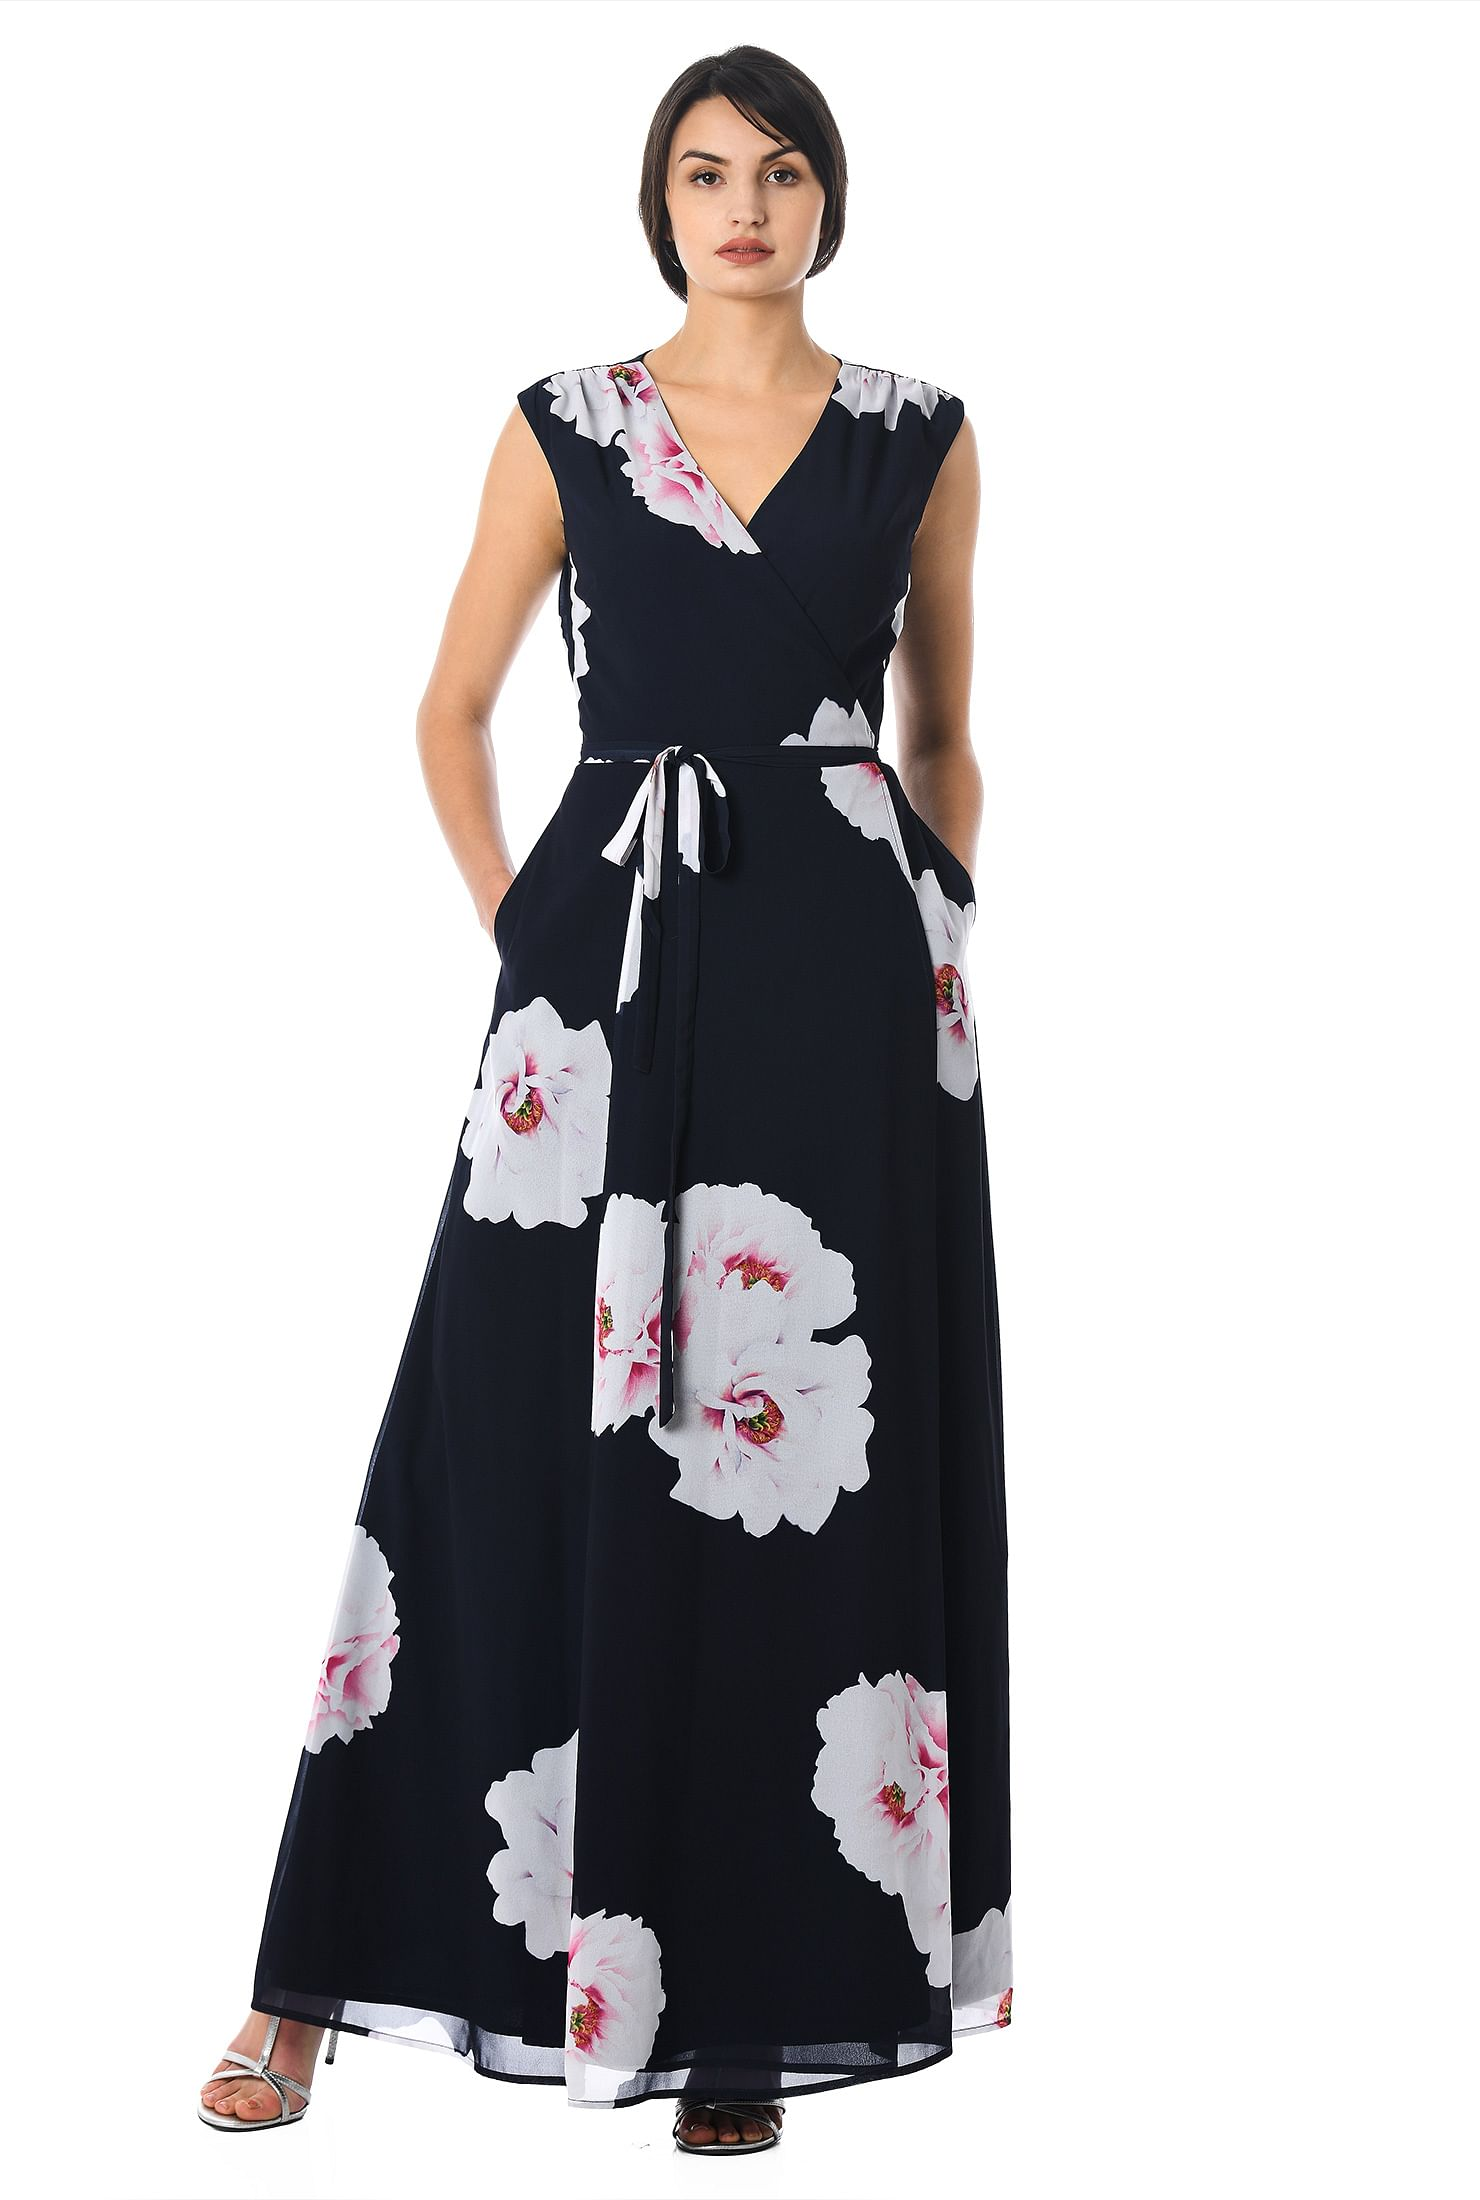 19c29186 dolman sleeve dresses, floral print dresses, Full Length Dresses,  lightweight Dresses,